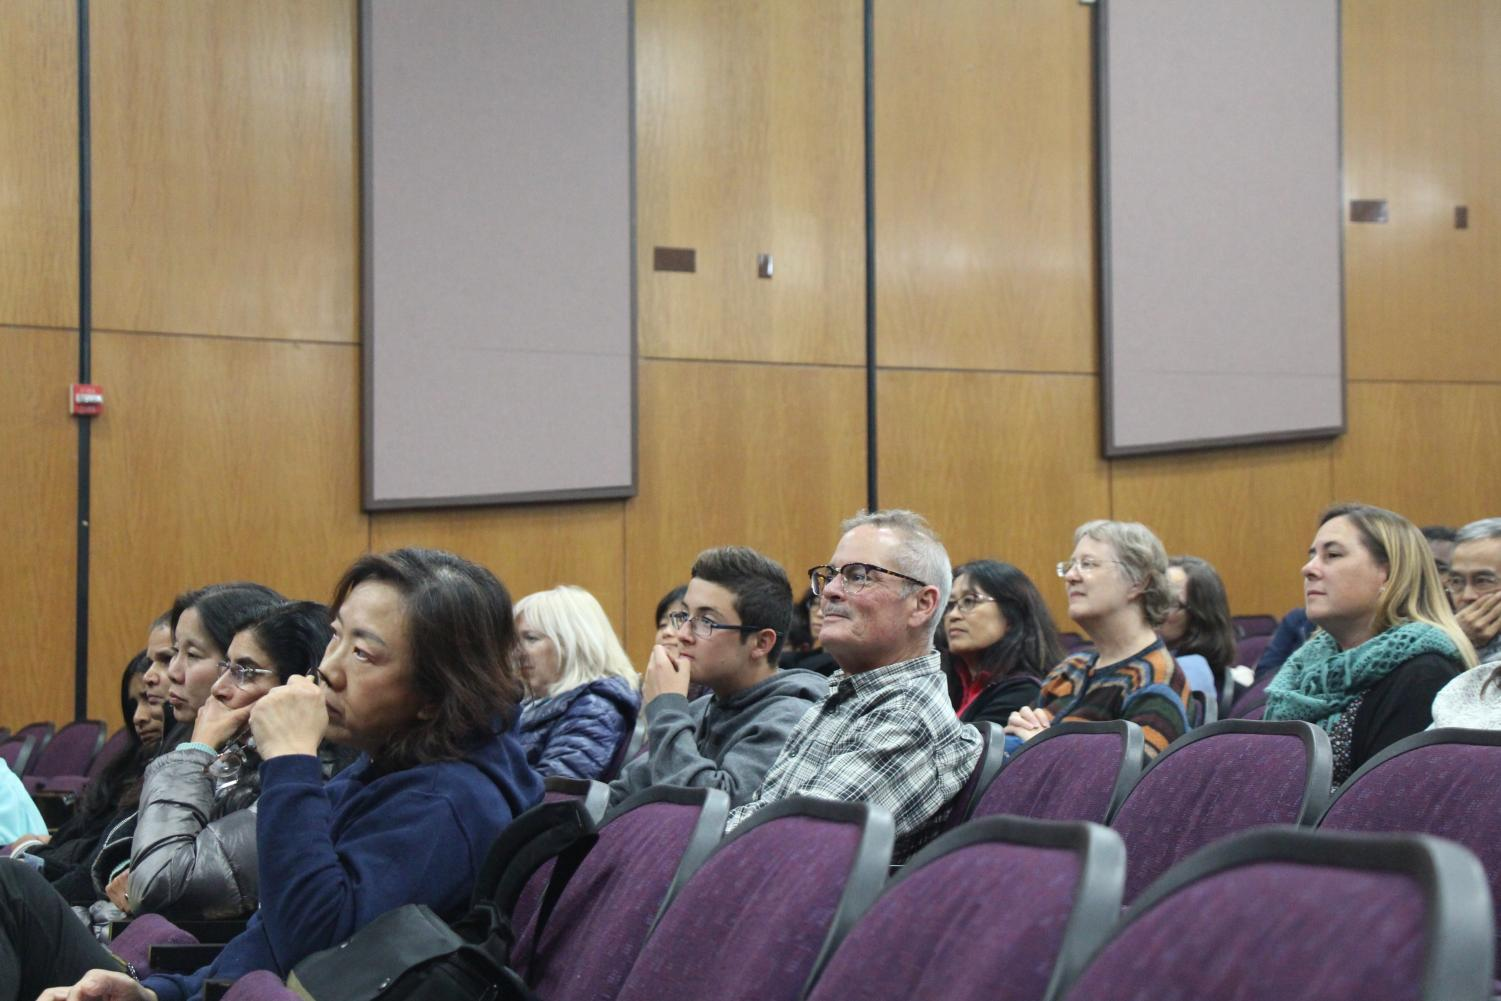 On Nov. 19, students and parents gathered in the auditorium to watch the movie